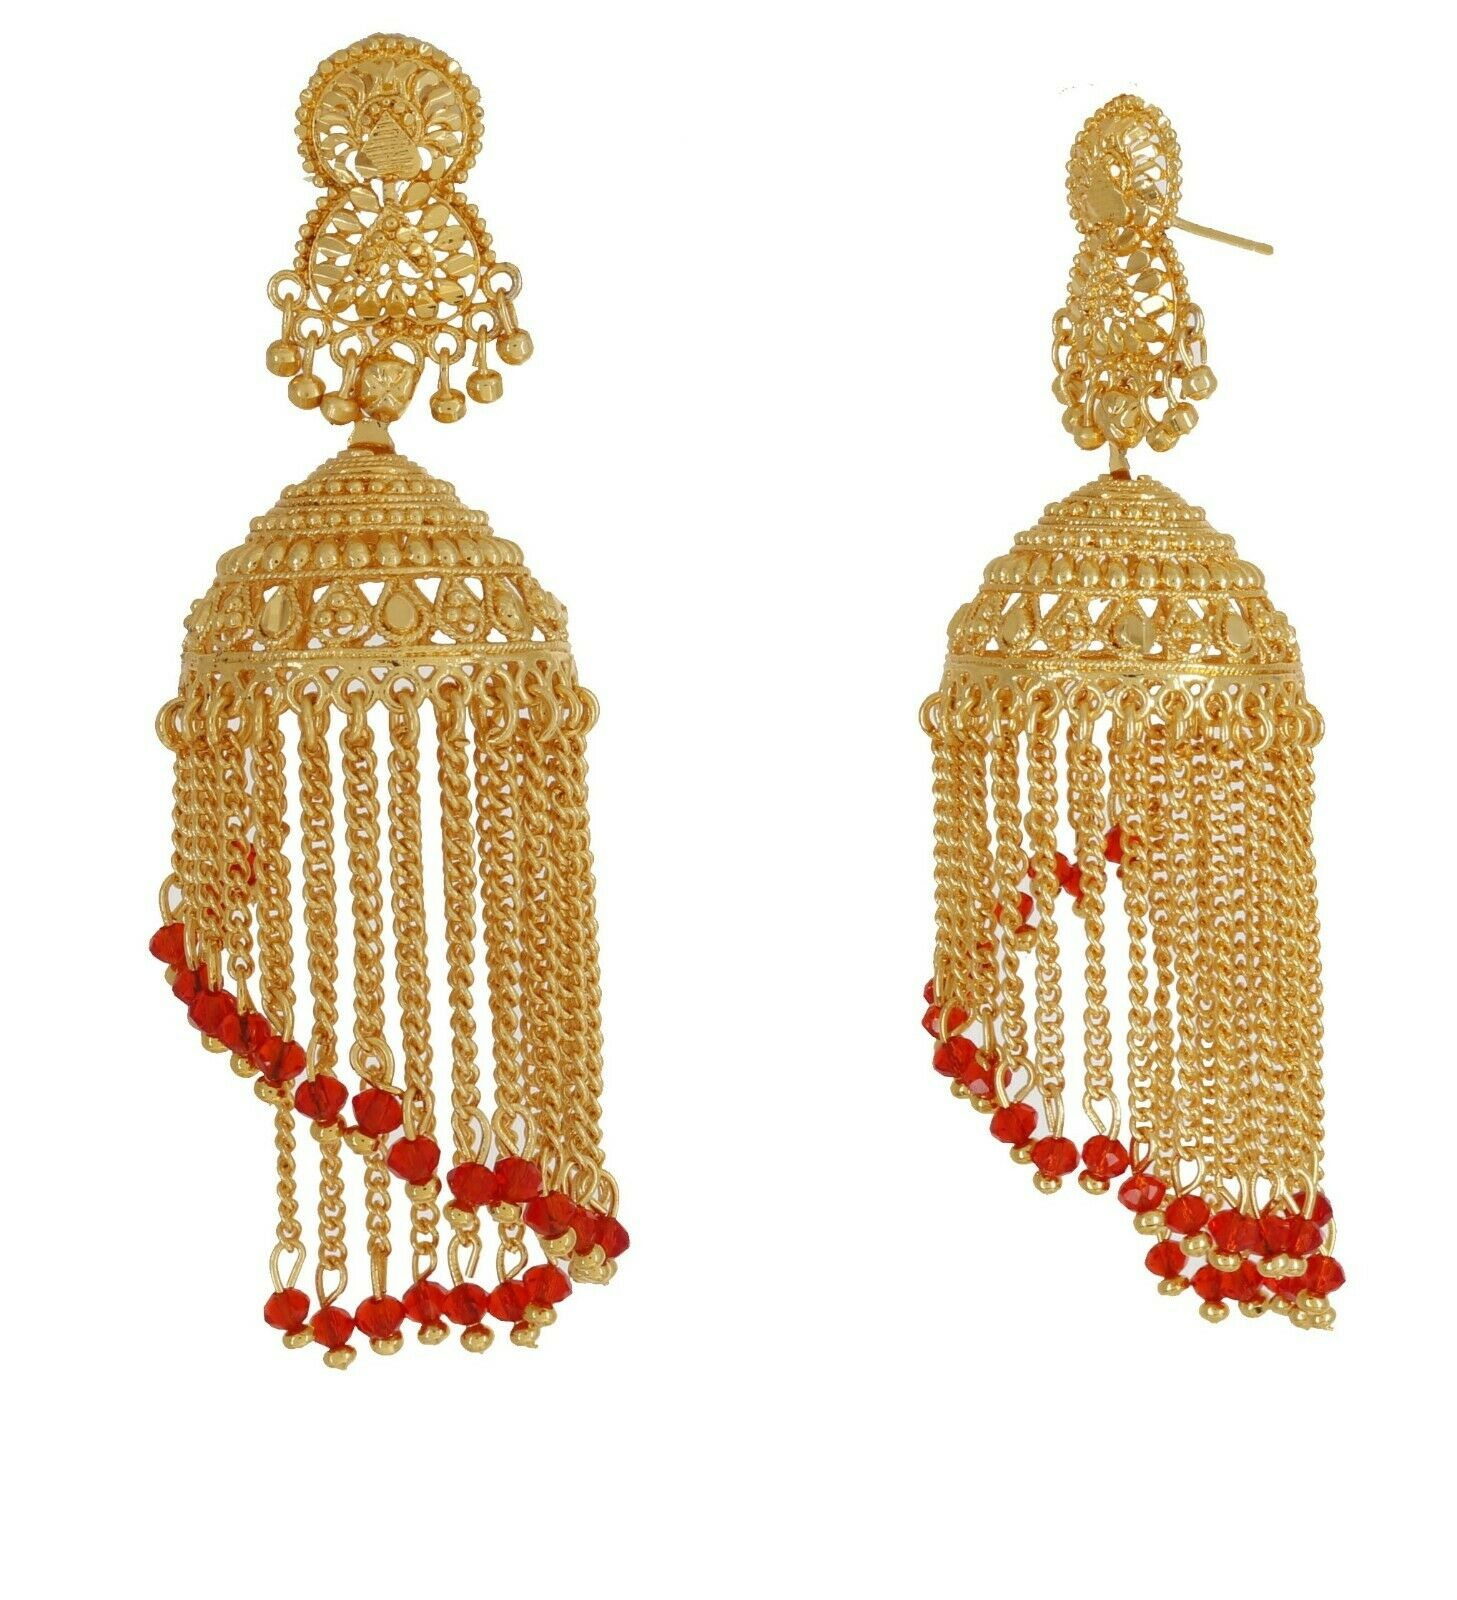 Indian Traditional Gold Plated Red Pearls Chain Fashion Earrings Wedding Jhumka